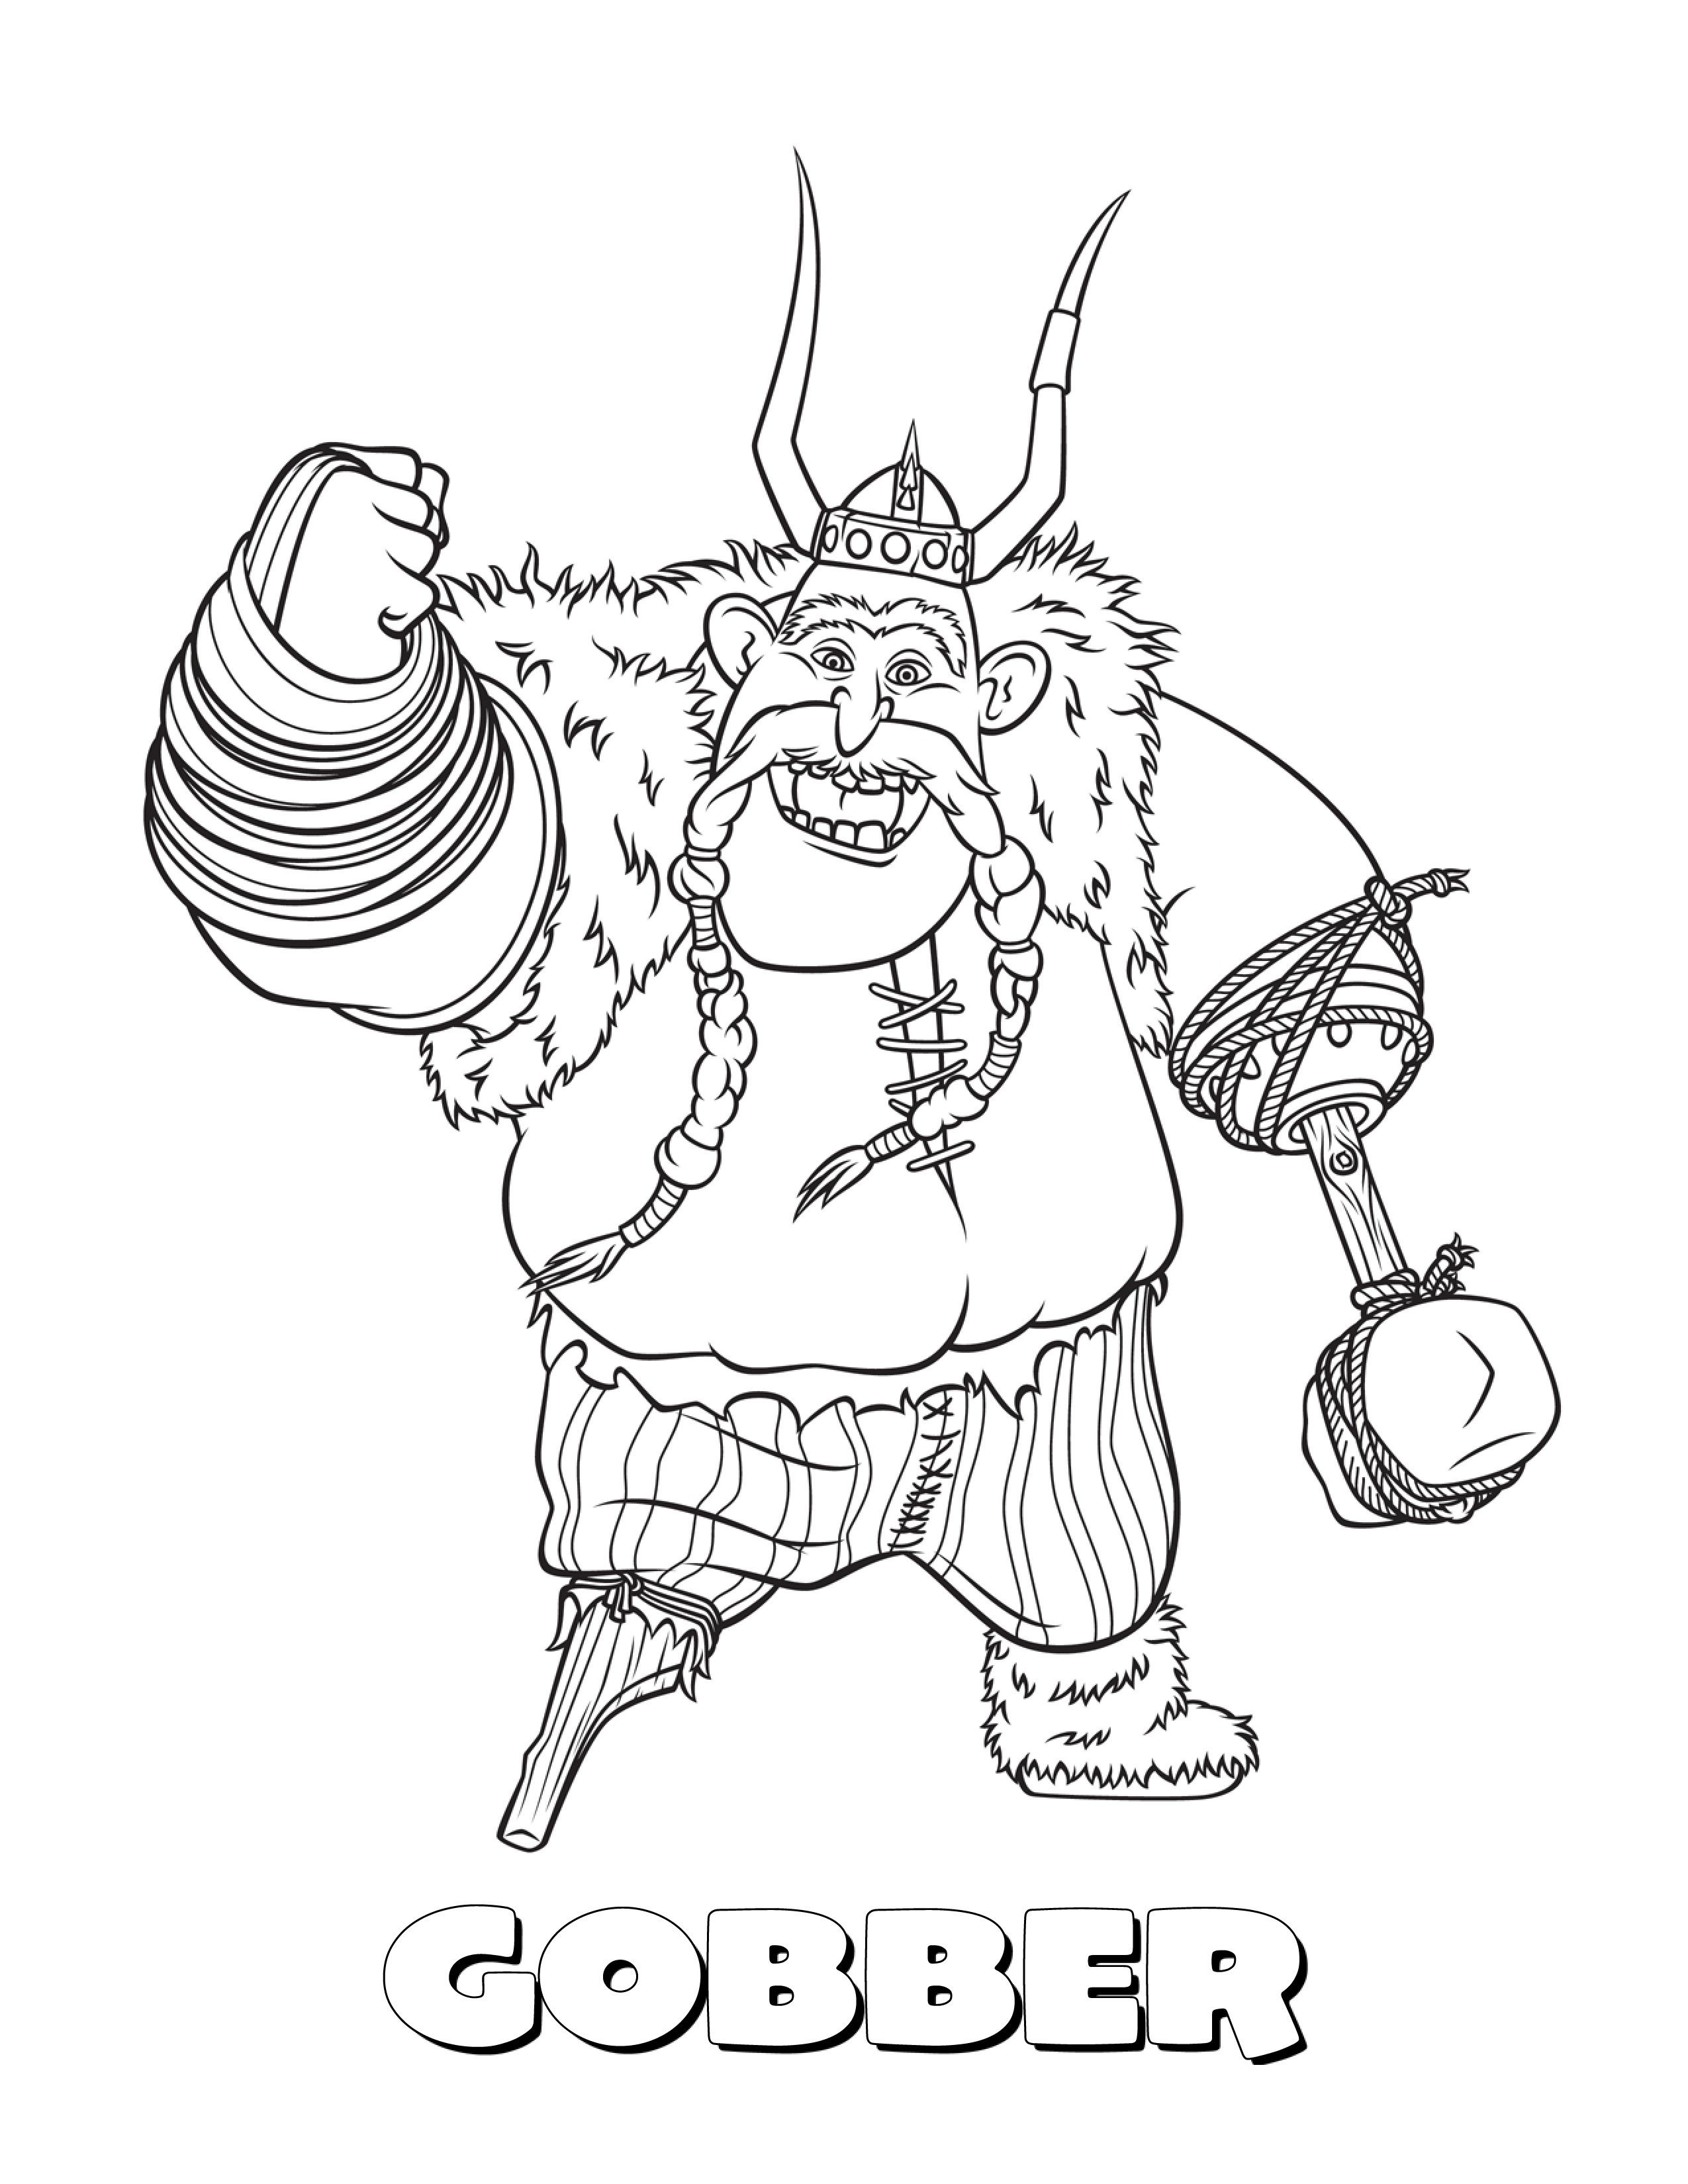 Free printable coloring pages how to train your dragon - How To Train Your Dragon Coloring Page Williams Birthday Pinterest Dragons And Coloring Books